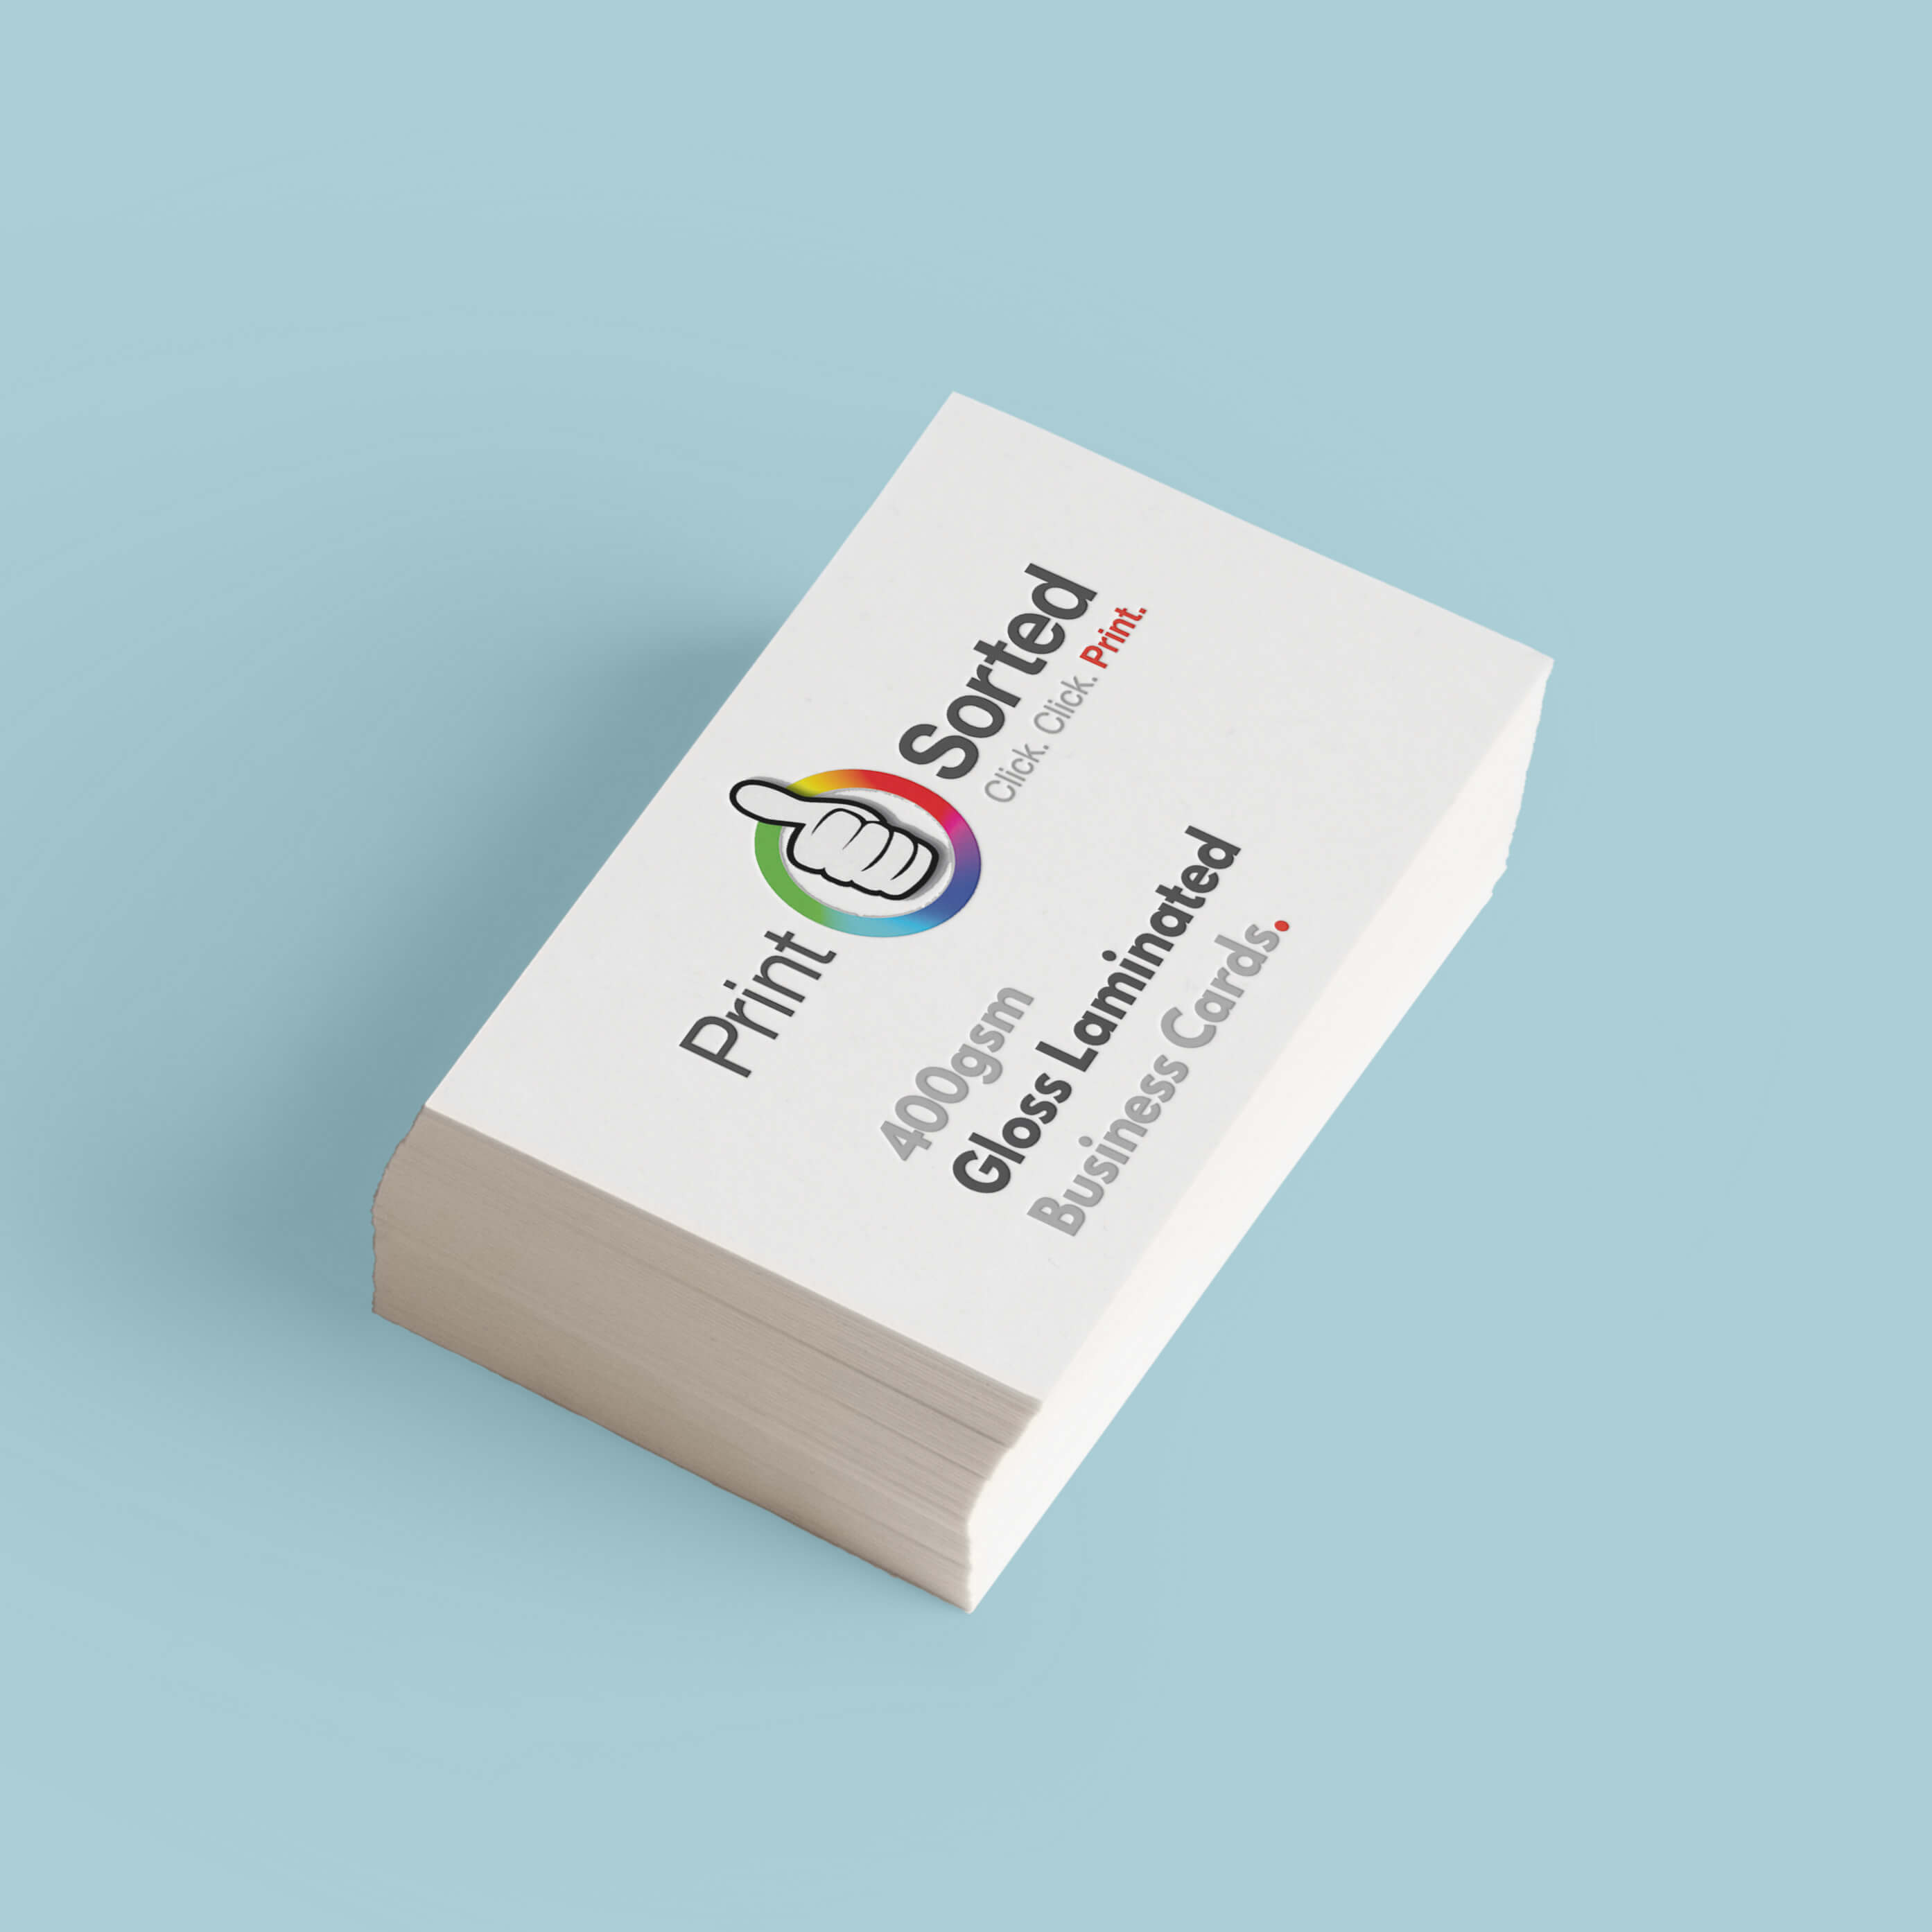 400gsm gloss laminated business cards all your print sorted 400gsm gloss laminated business cards colourmoves Image collections